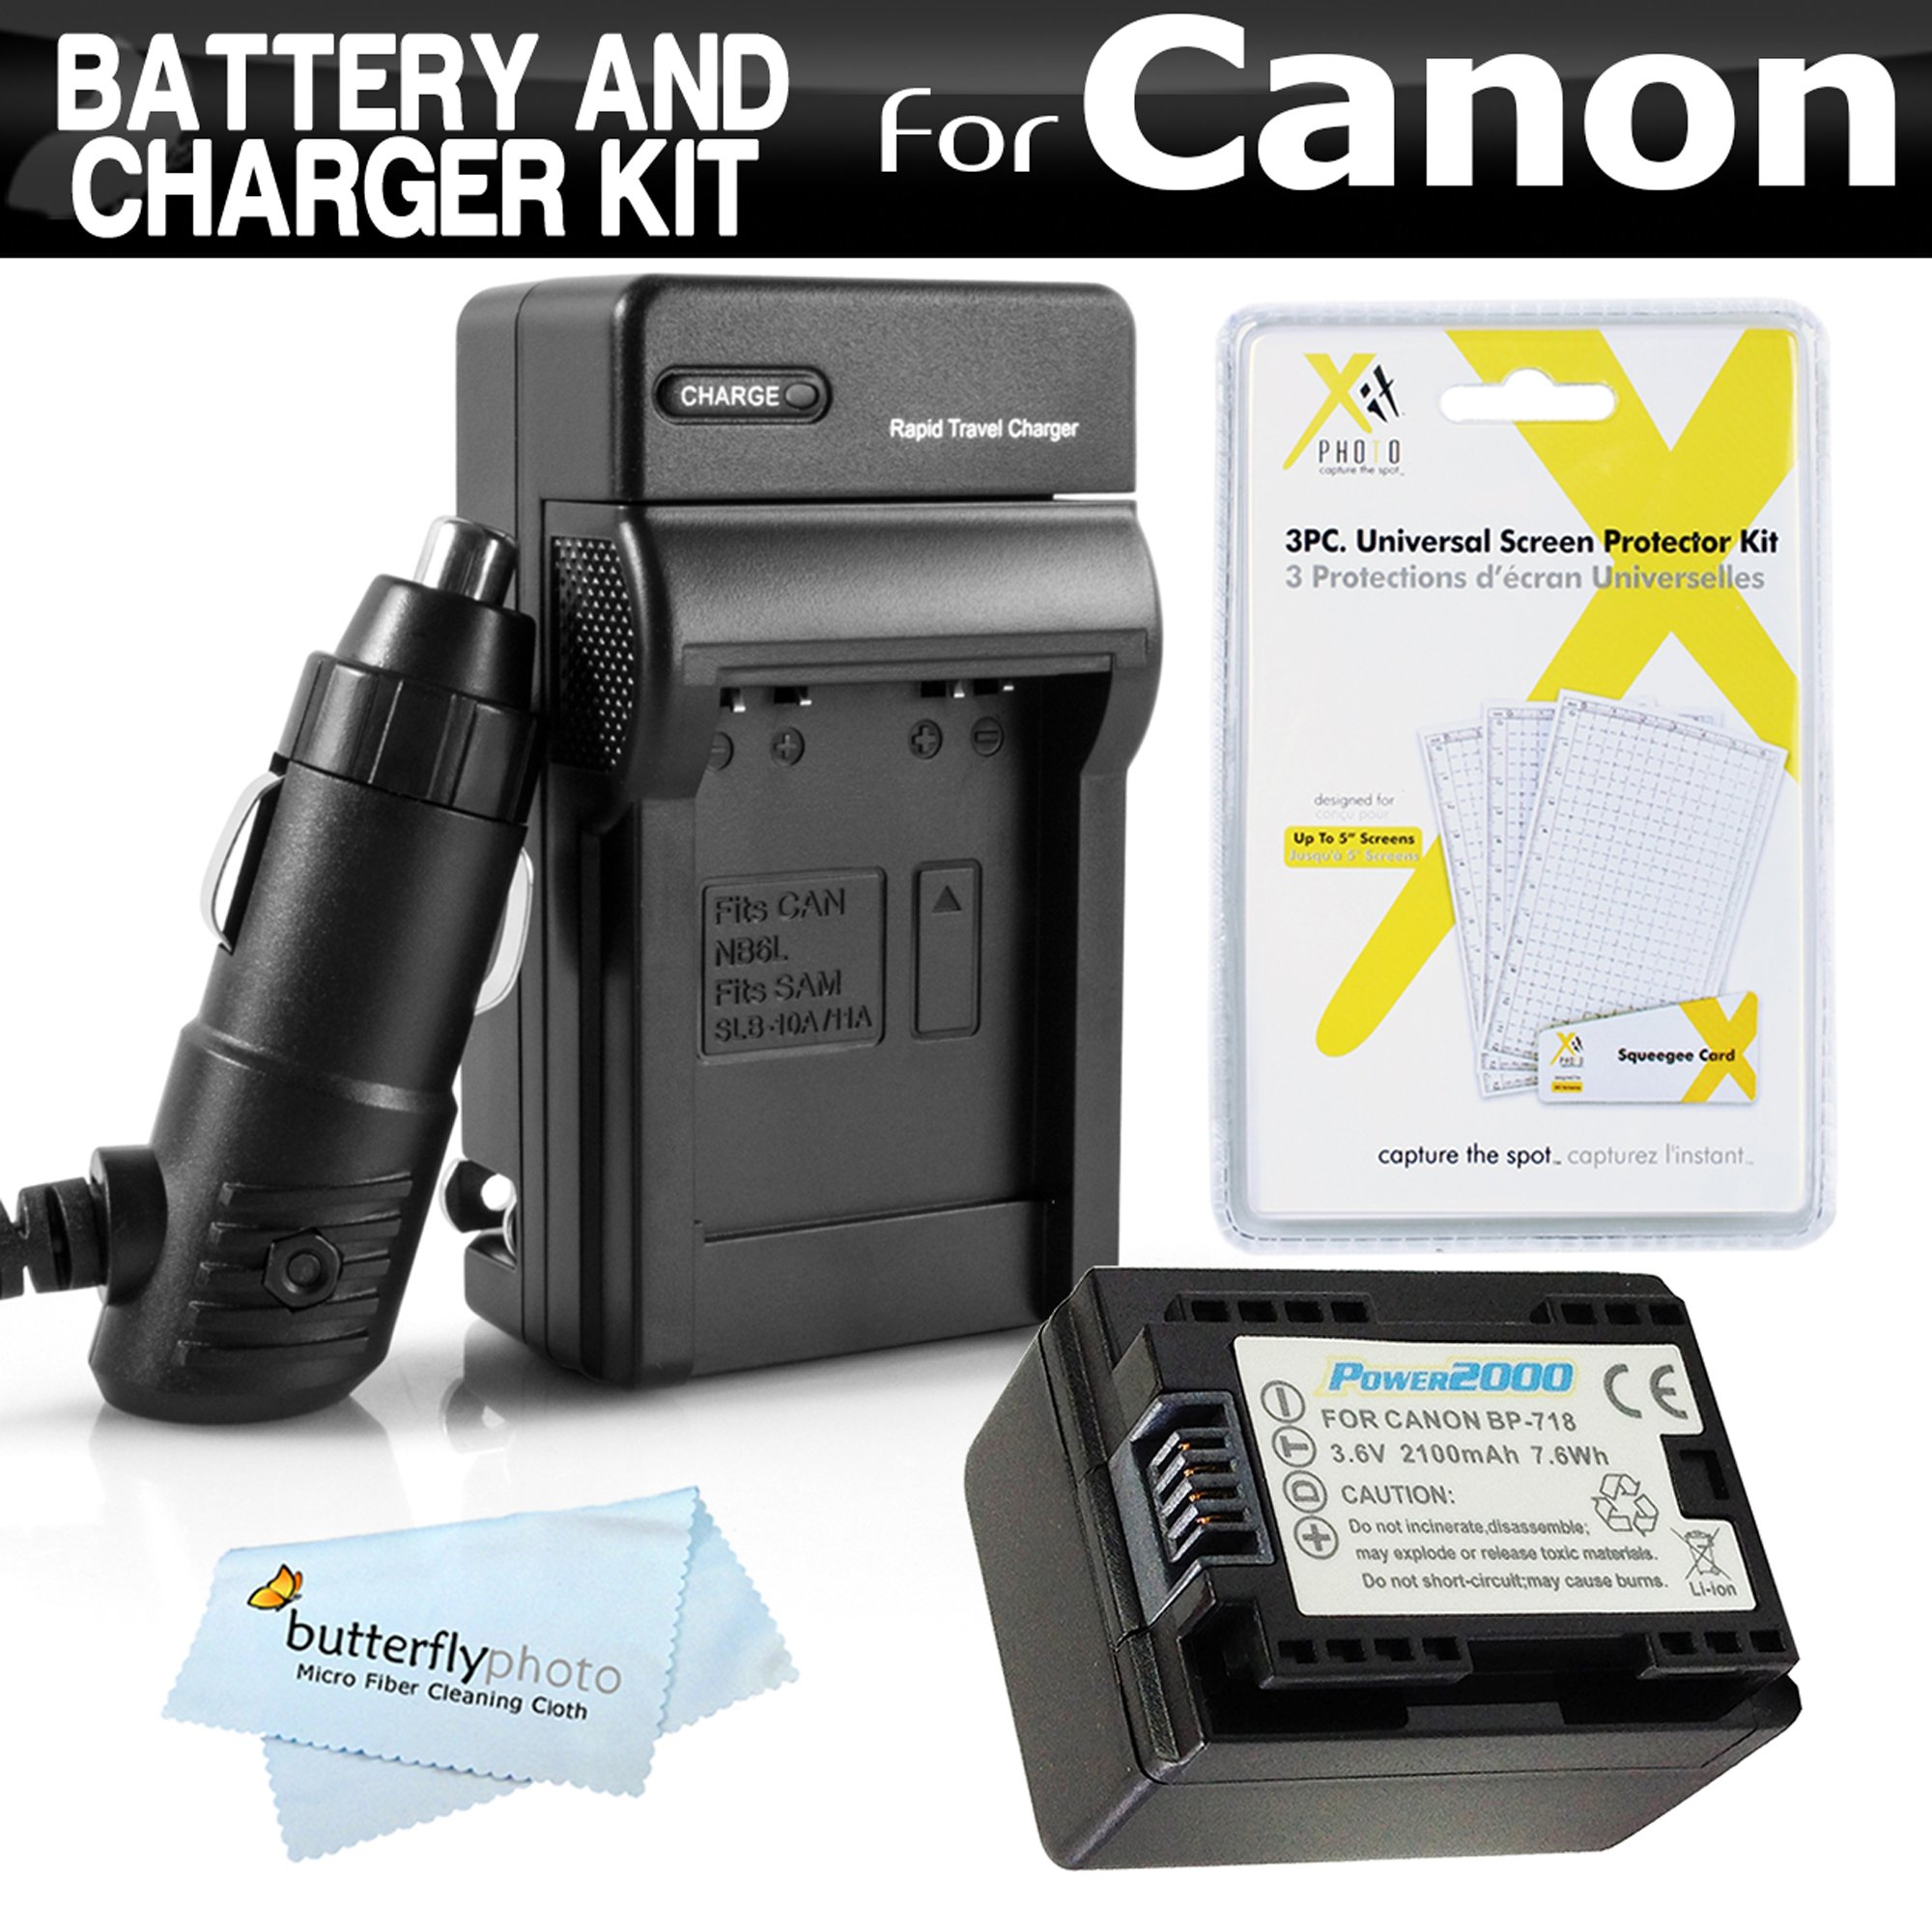 Battery And Charger Kit For Canon VIXIA HF R82, HF R80, HF R800, HF R62, HF R60, HF R600, HF R700, HF R72, HF R70 Camcorder Includes Replacement BP-718 Battery + Charger (Replaces Canon BP-709,BP-718)